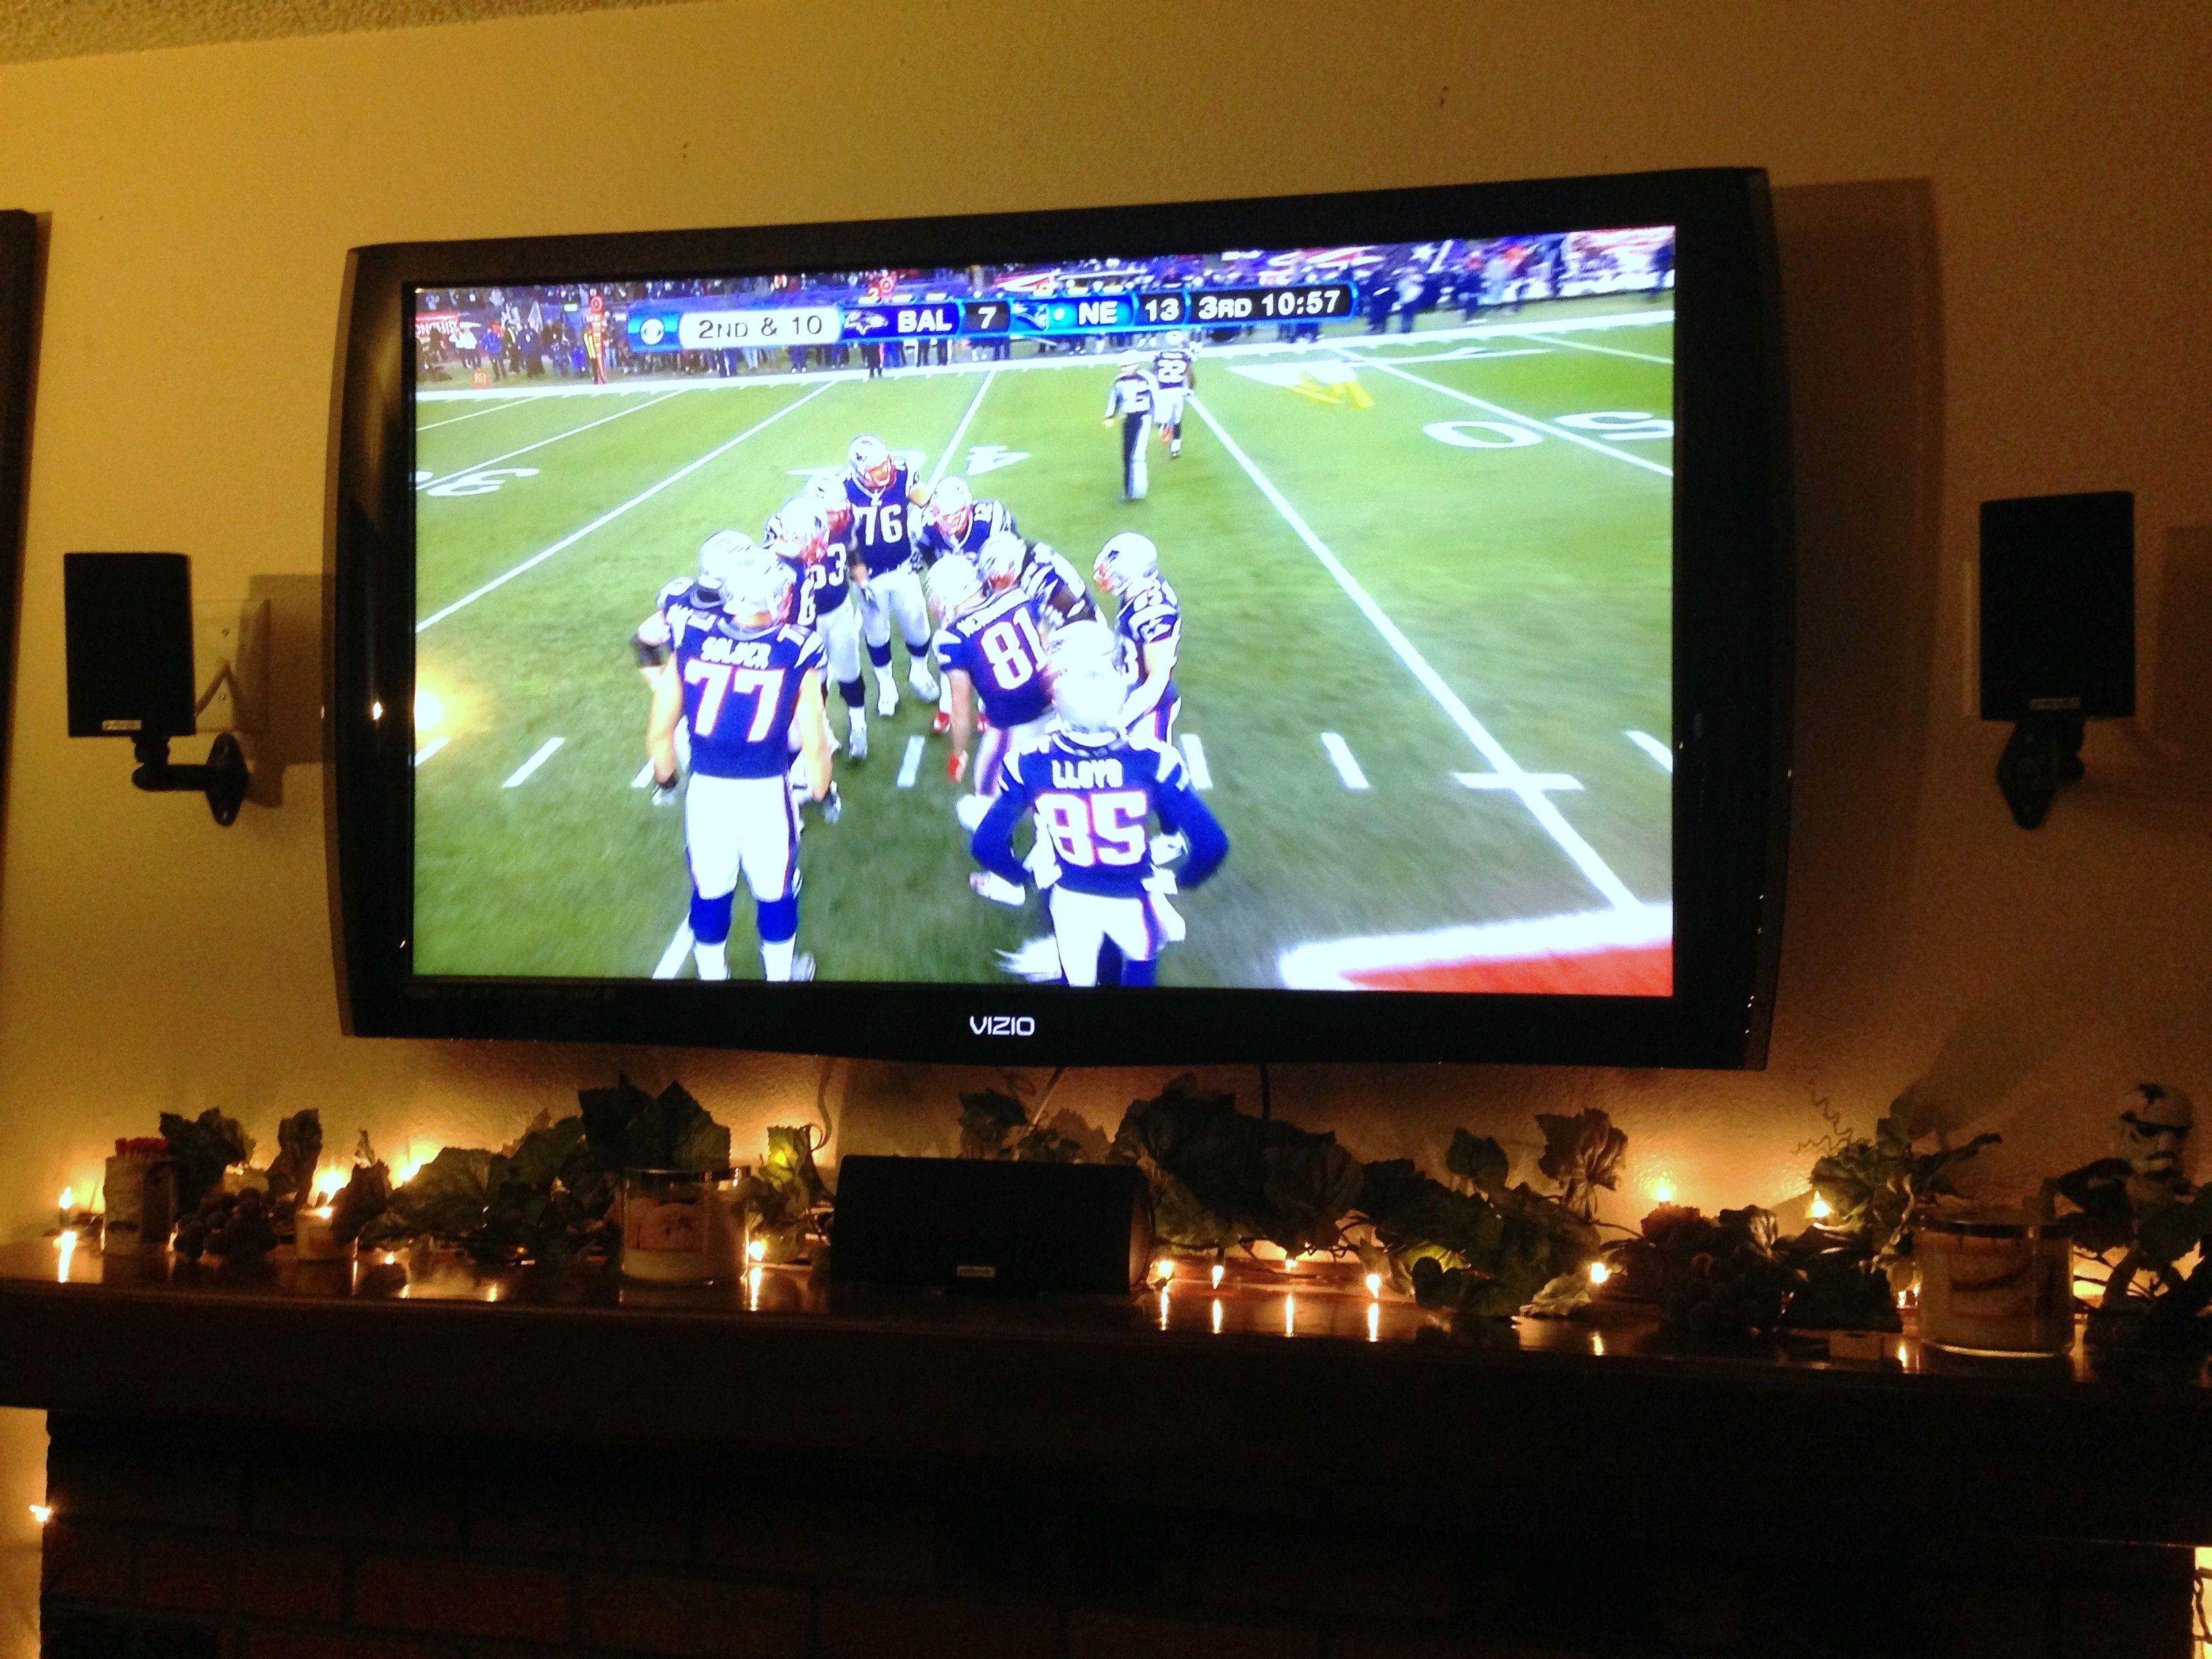 Tv Wall Mount Above Fireplace With Surround Sound Speakers Awsome Would Love This During Football Season Wall Mounted Tv Home Theater Installation Tv Wall